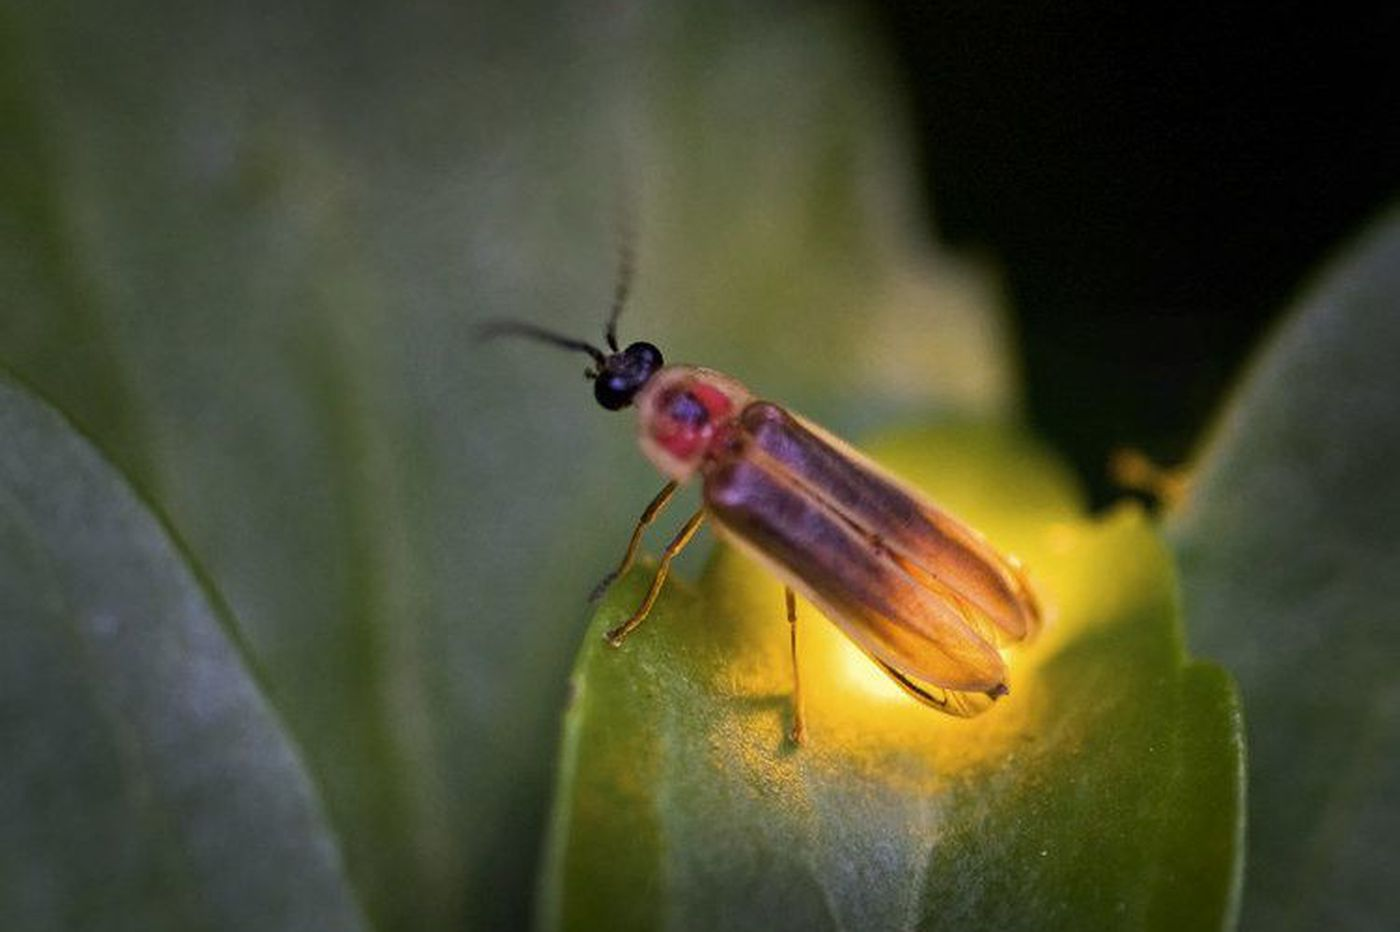 Firefly season is peaking in the Philly area. Here is what sets Pennsylvania's state insect aglow.